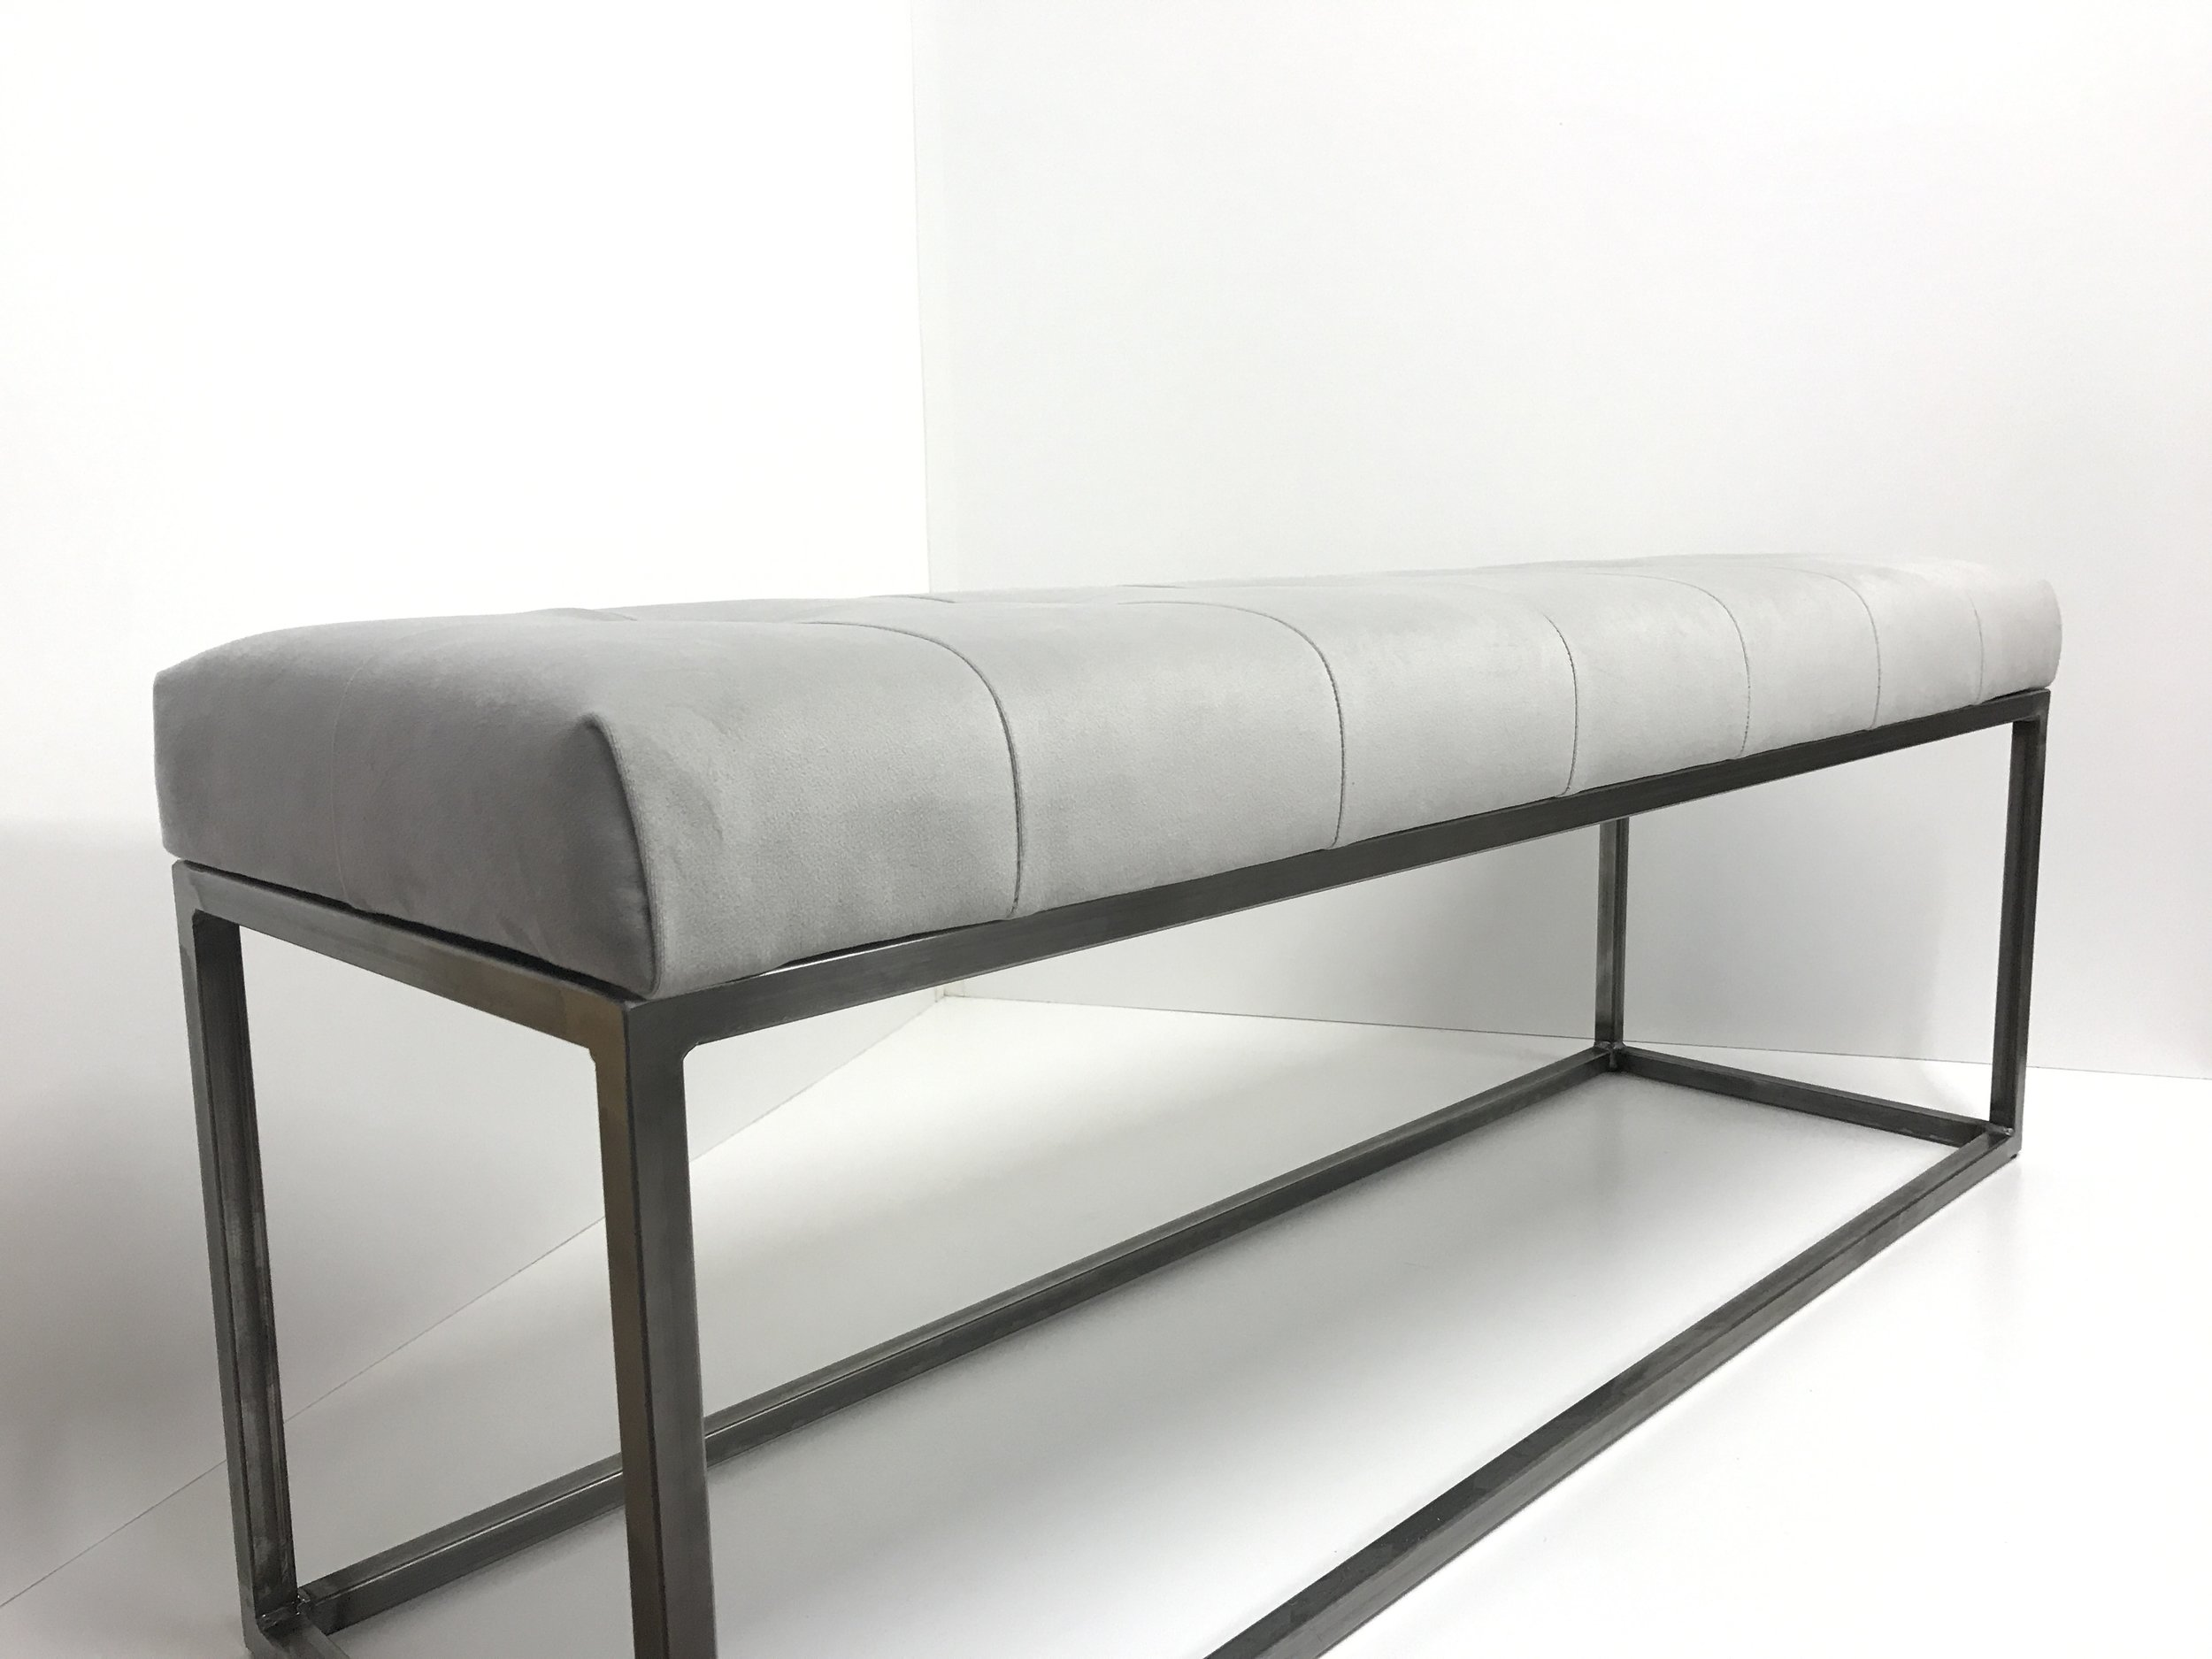 [new] Boxed Frame Bench - Our latest design to join the range!